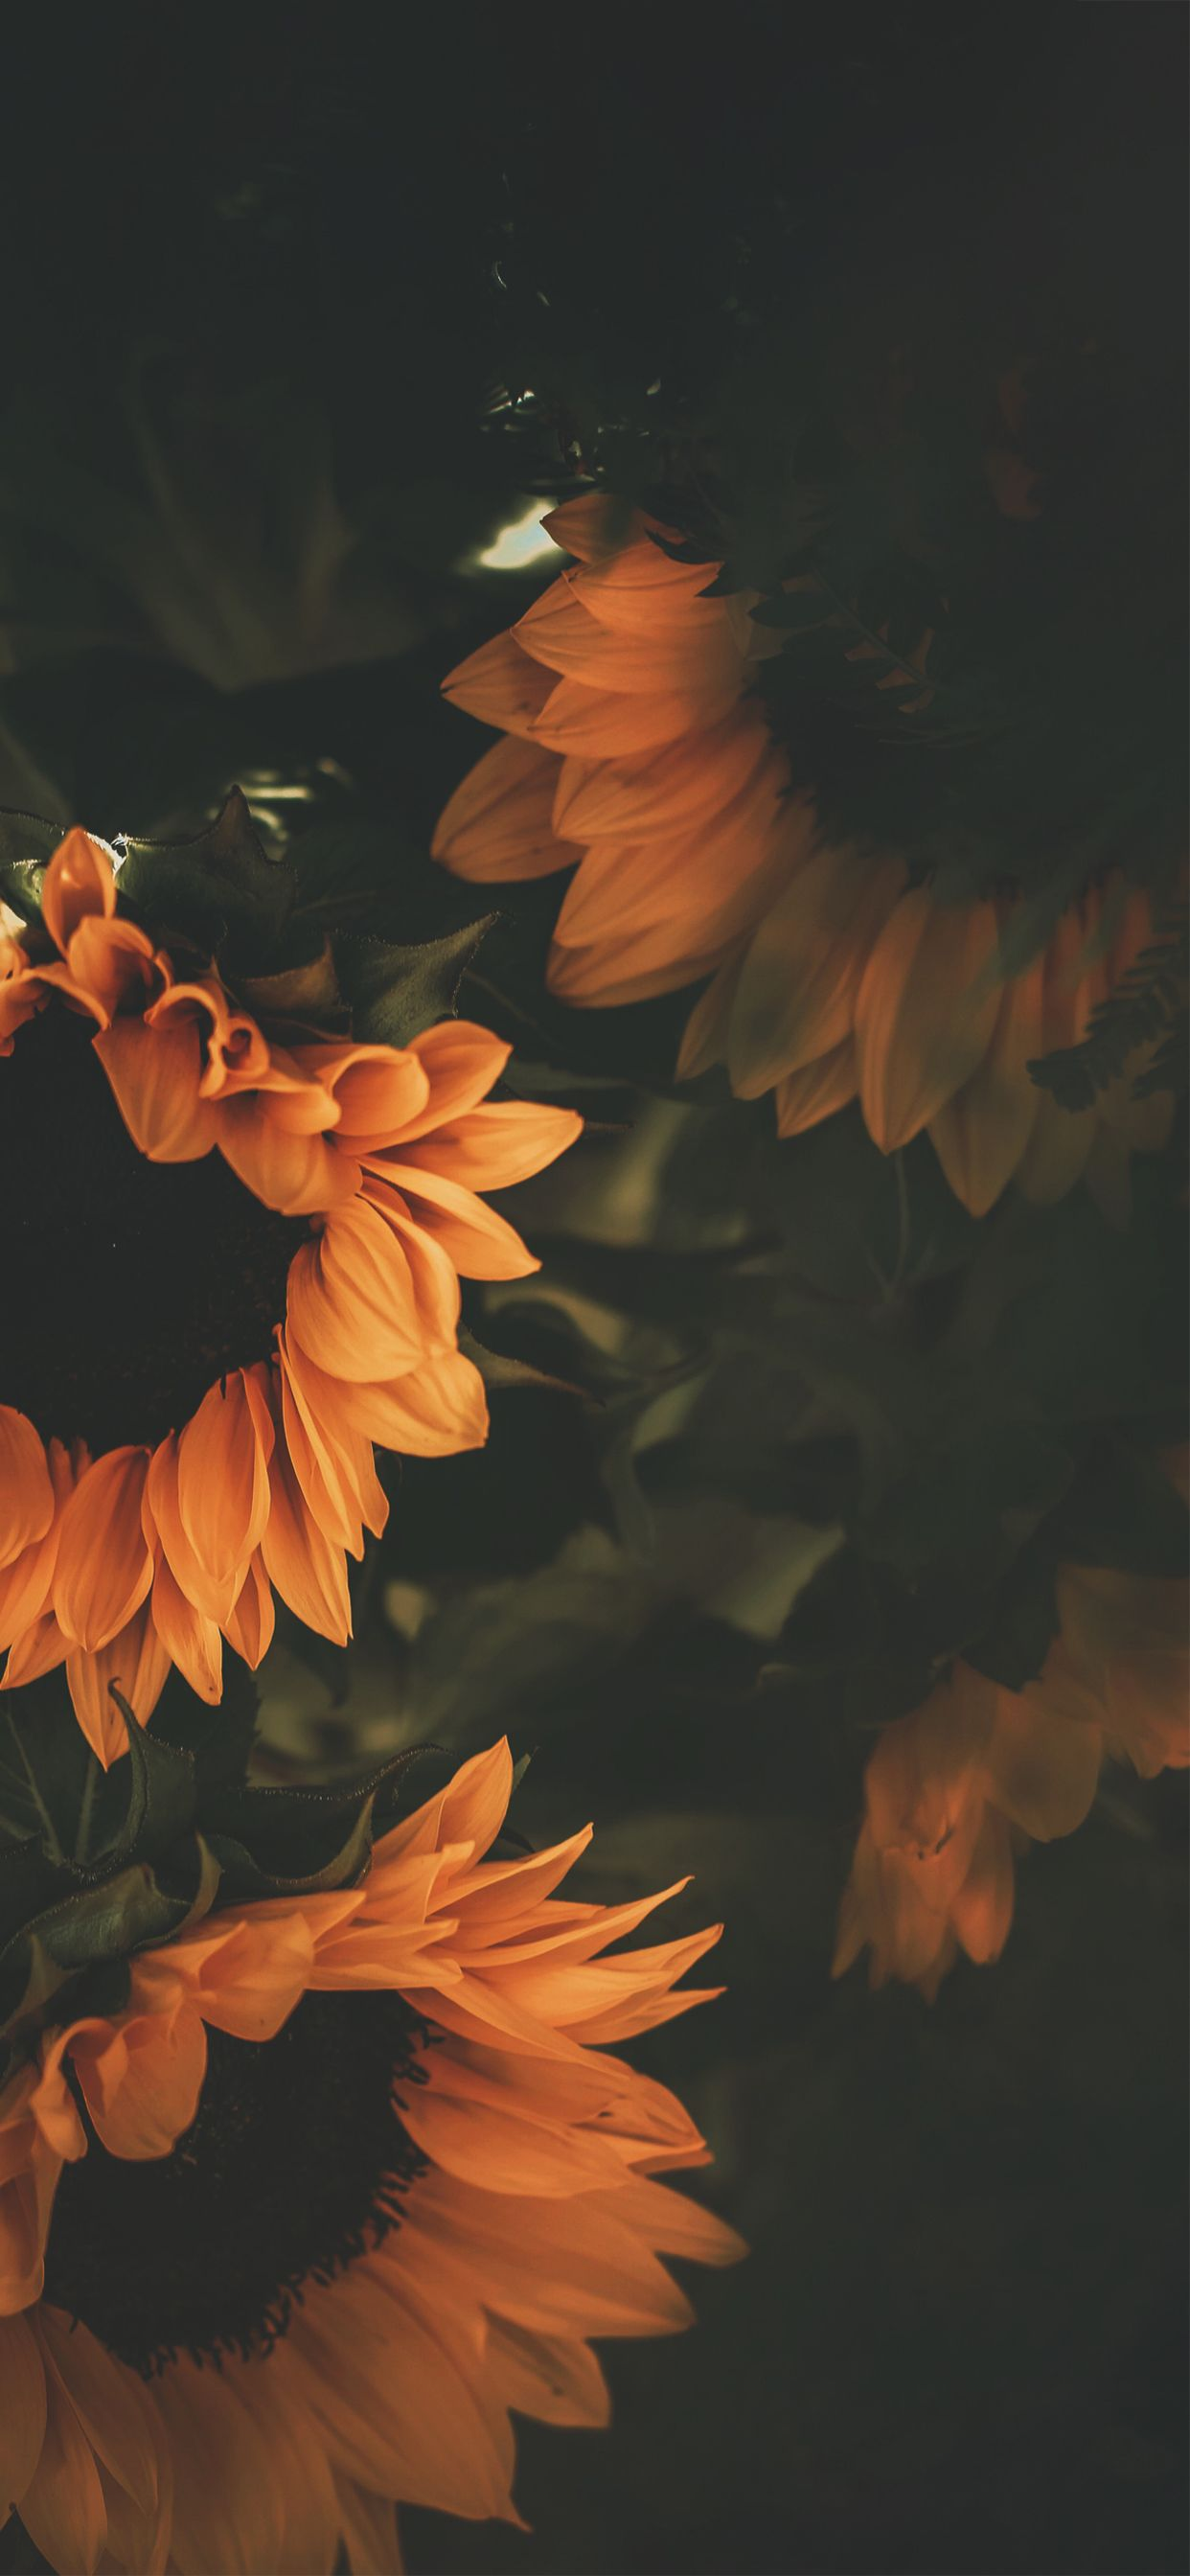 iPhone Xs Max Sunflower wallpaper, Backgrounds phone